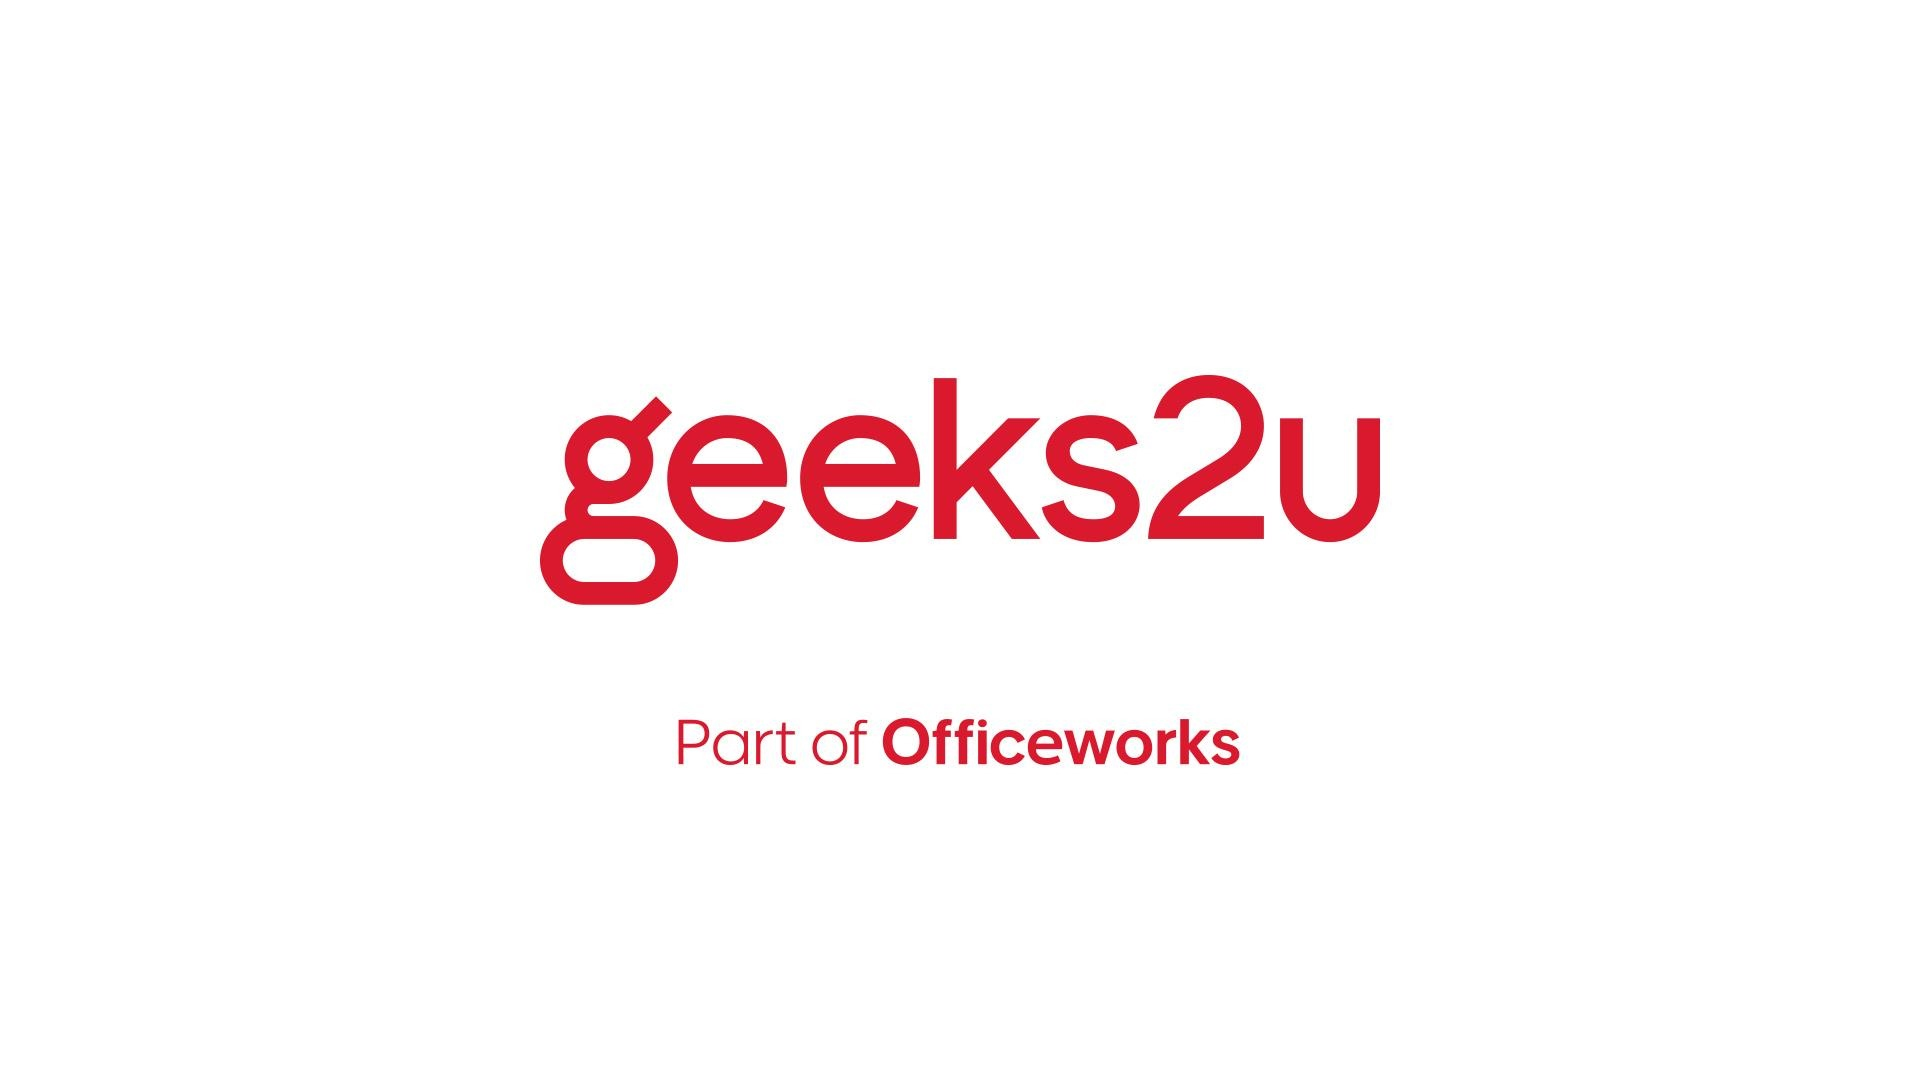 GEEKS2U solves Australians' tech problems in first-ever brand campaign via Spinach